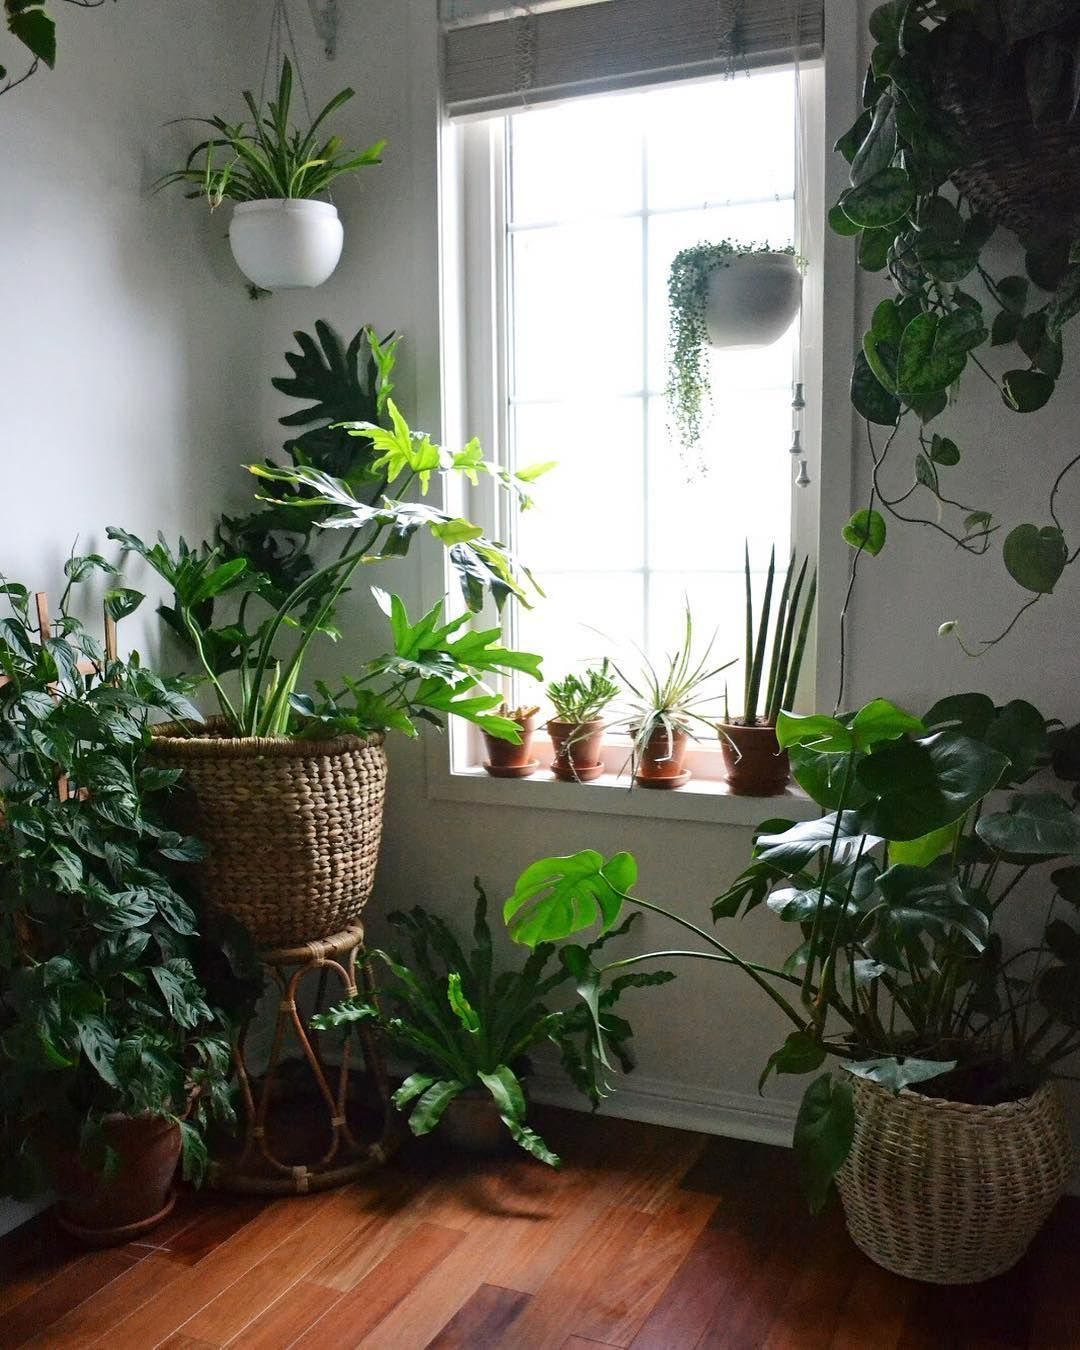 House Plants For Shady Rooms: Interior Design Plants, House Plants